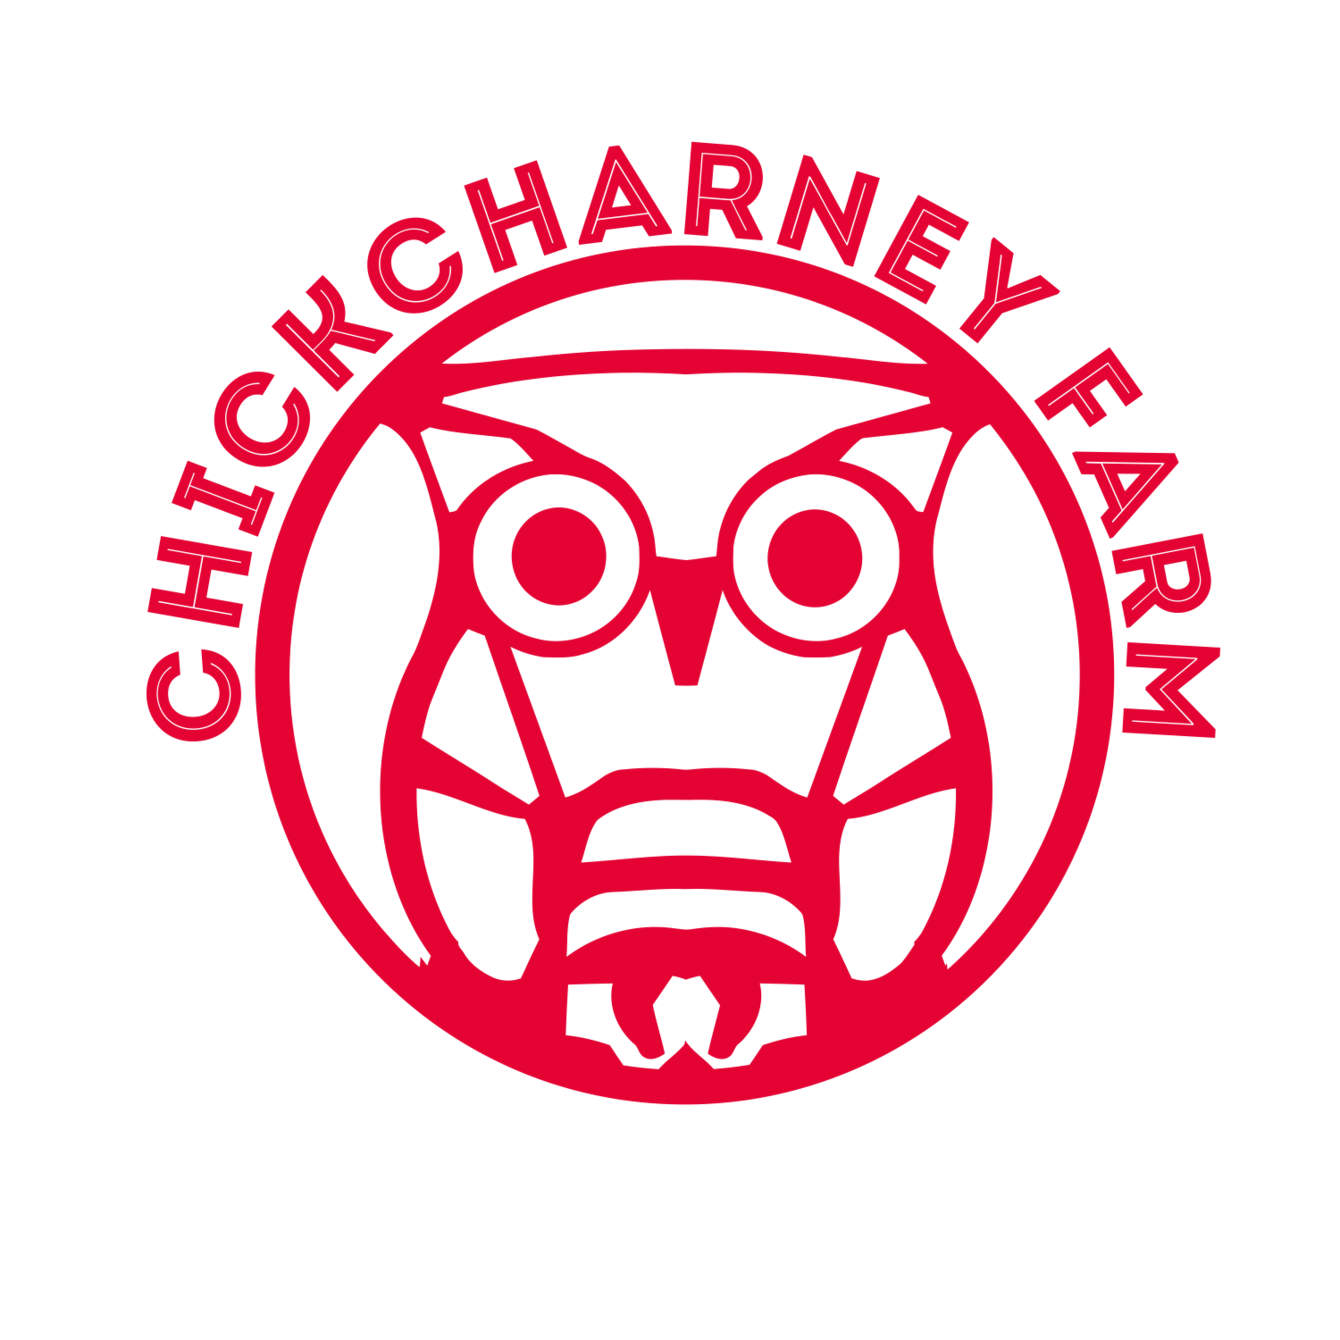 Chickcharney Farm